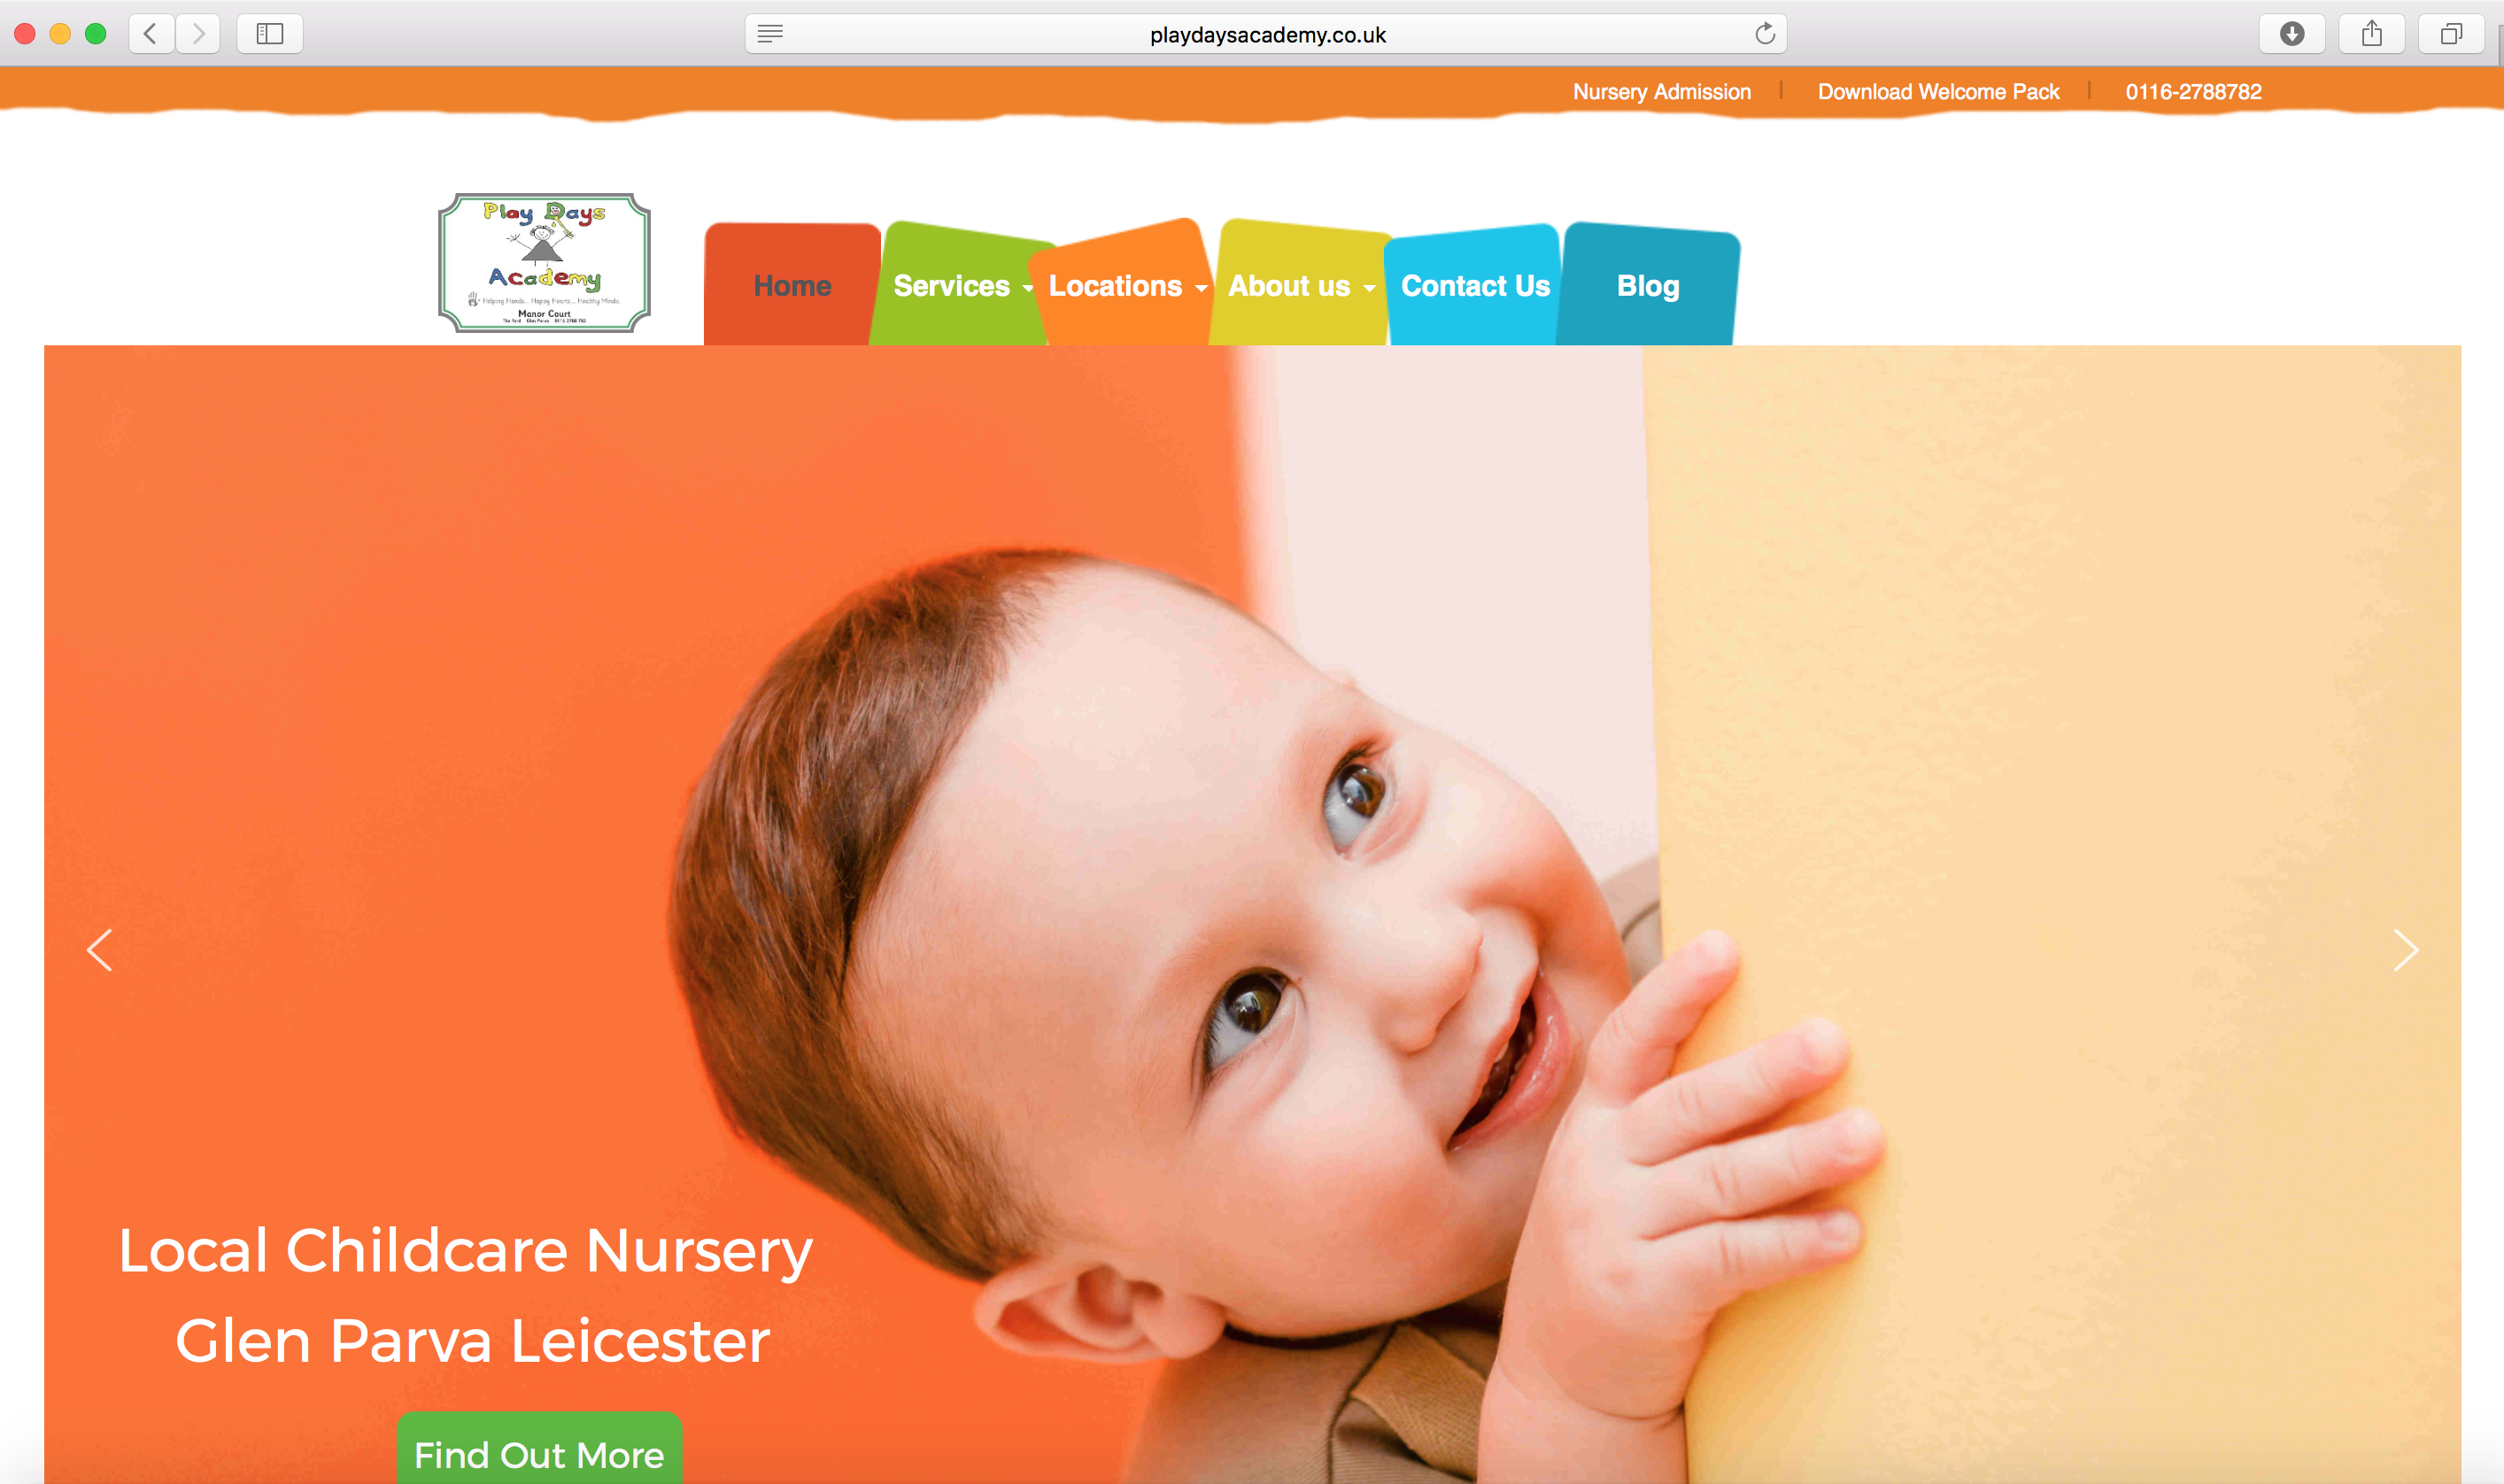 New nursery website design